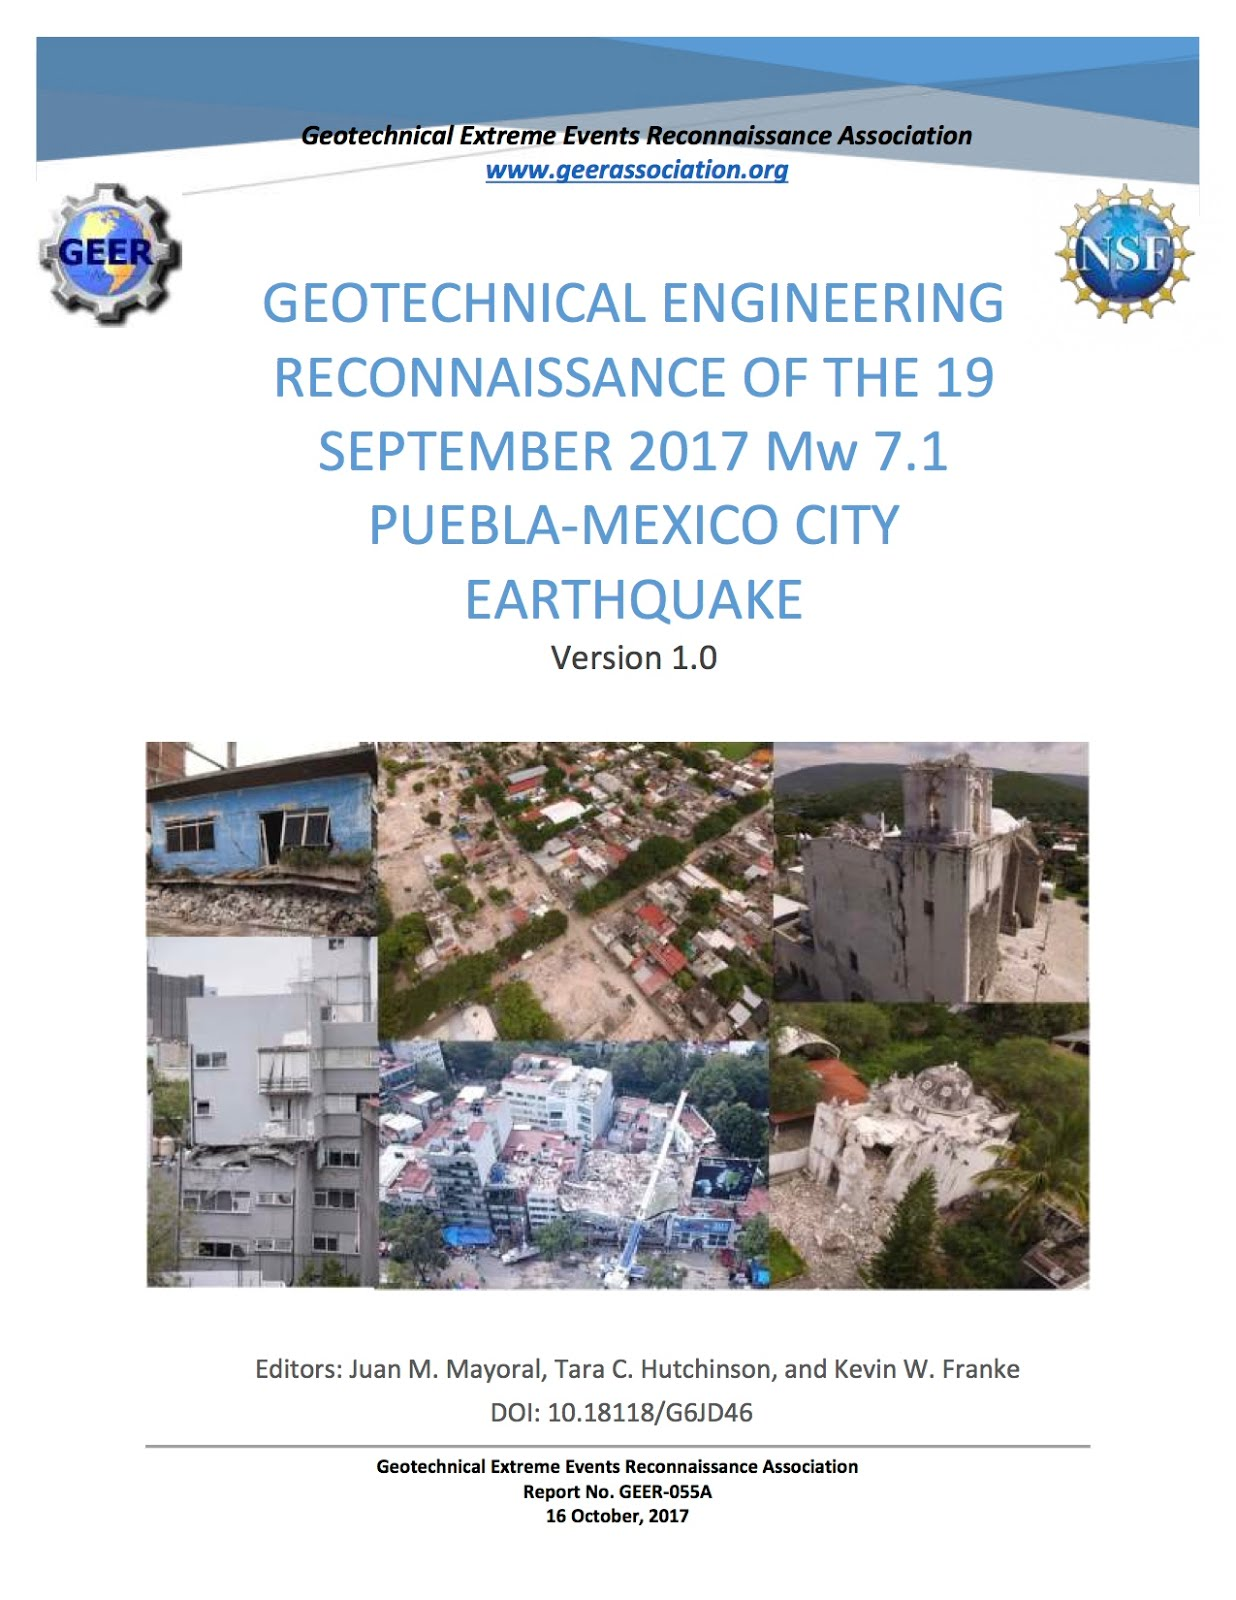 GEOTECHNICAL ENGINEERING RECONNAISSANCE OF THE 19 SEPTEMBER 2017 Mw 7.1 PUEBLA-MEXICO CITY EARTHQUA